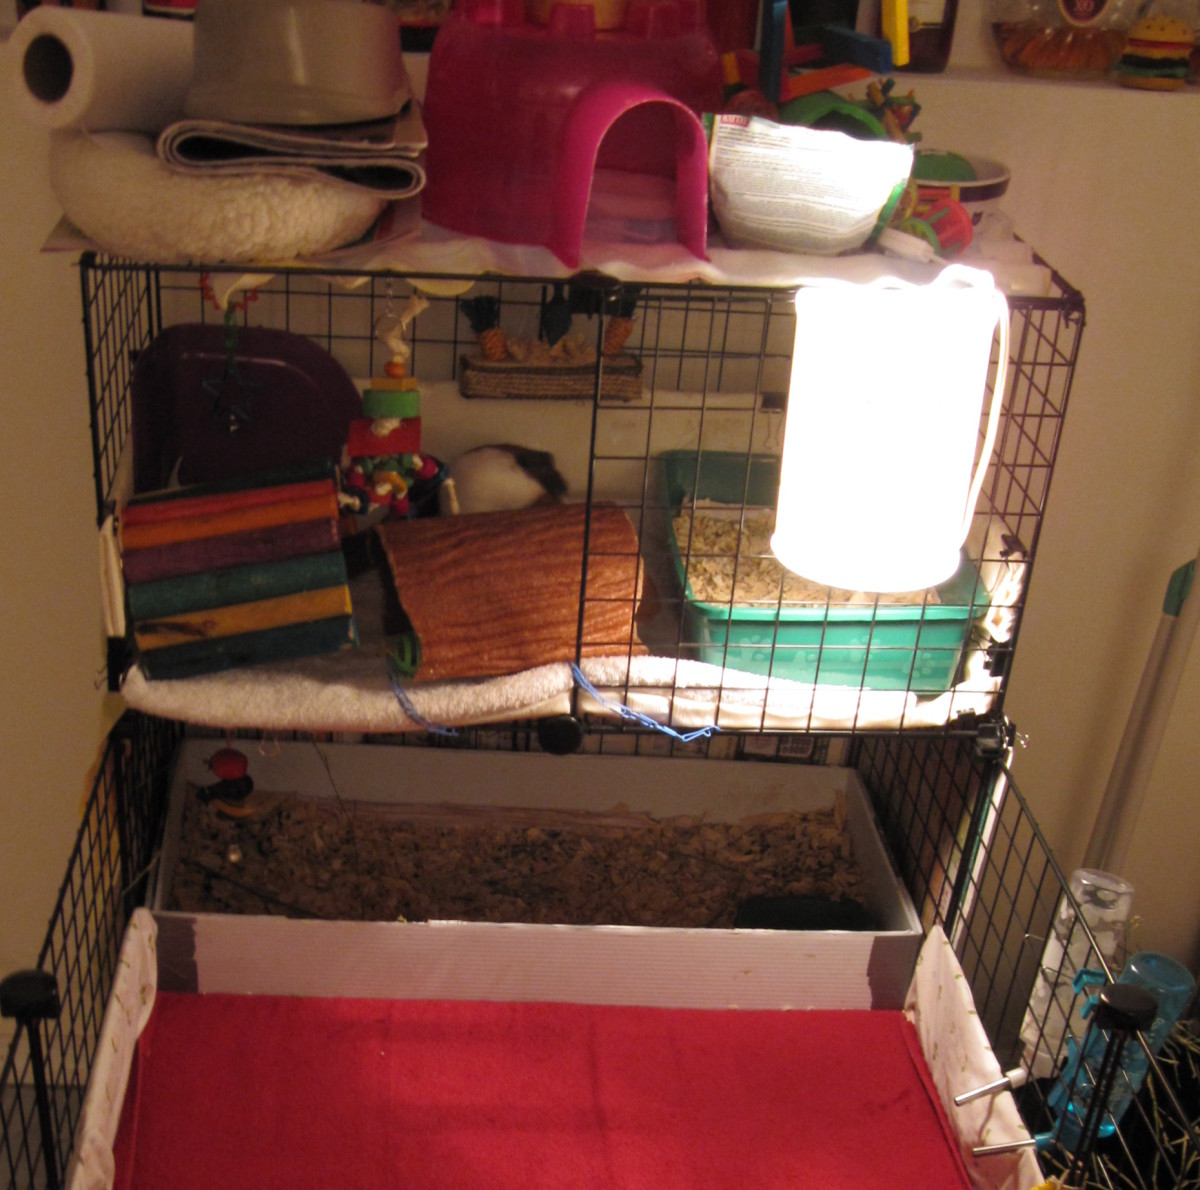 Cleaning A Guinea Pig S Cage The Fast And Easy Way